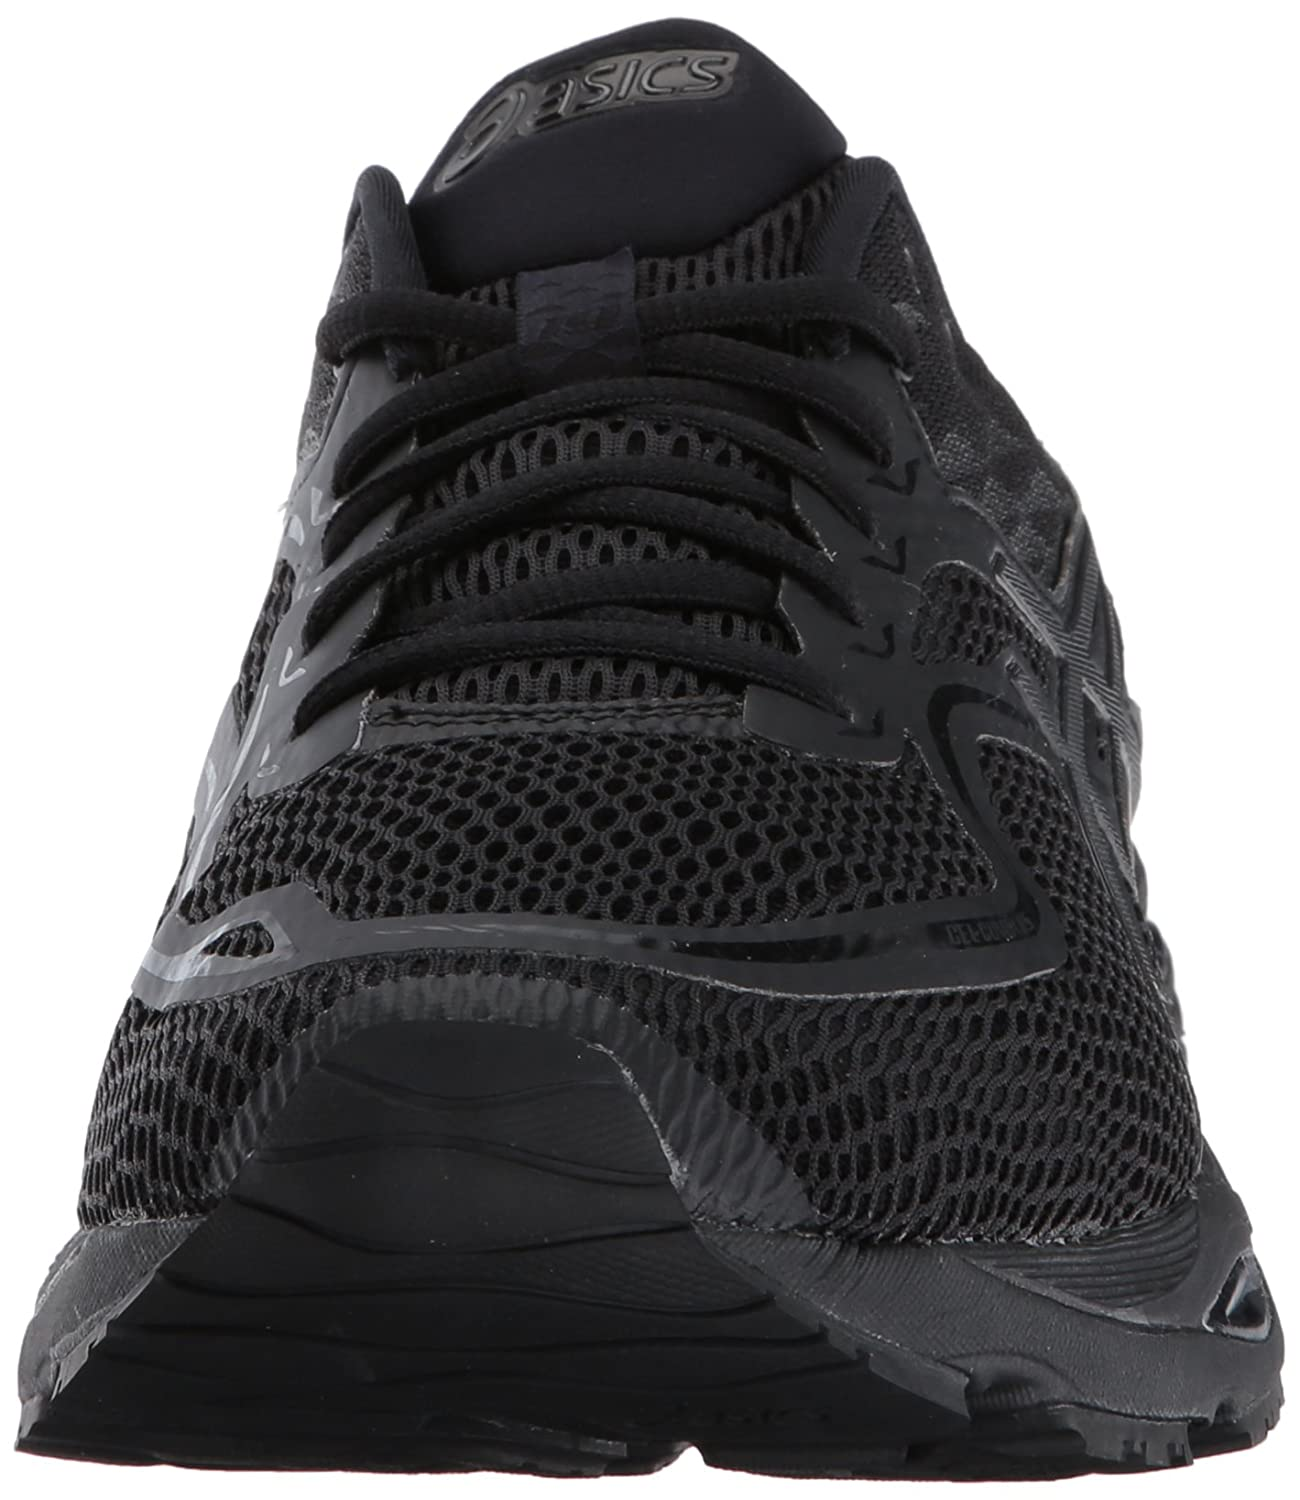 ASICS Men's Gel-Cumulus 19 Running Shoe B01N3LRWAQ 10 D(M) US|Black/Black/Phantom